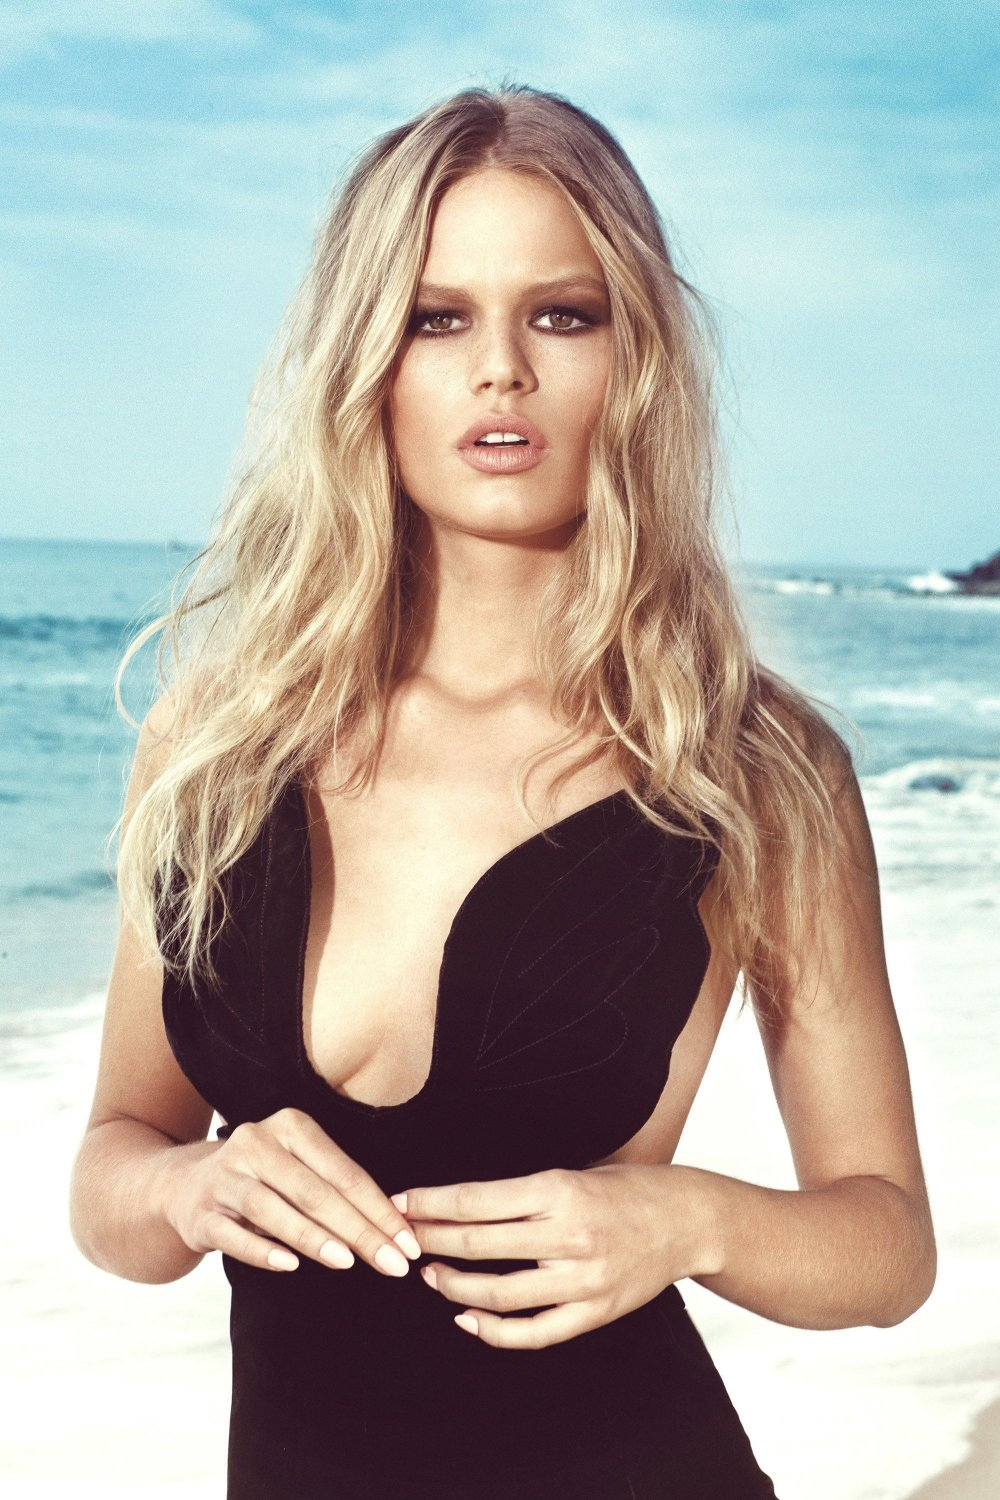 anna-ewers-for-us-harpers-bazaar-may-2015-3